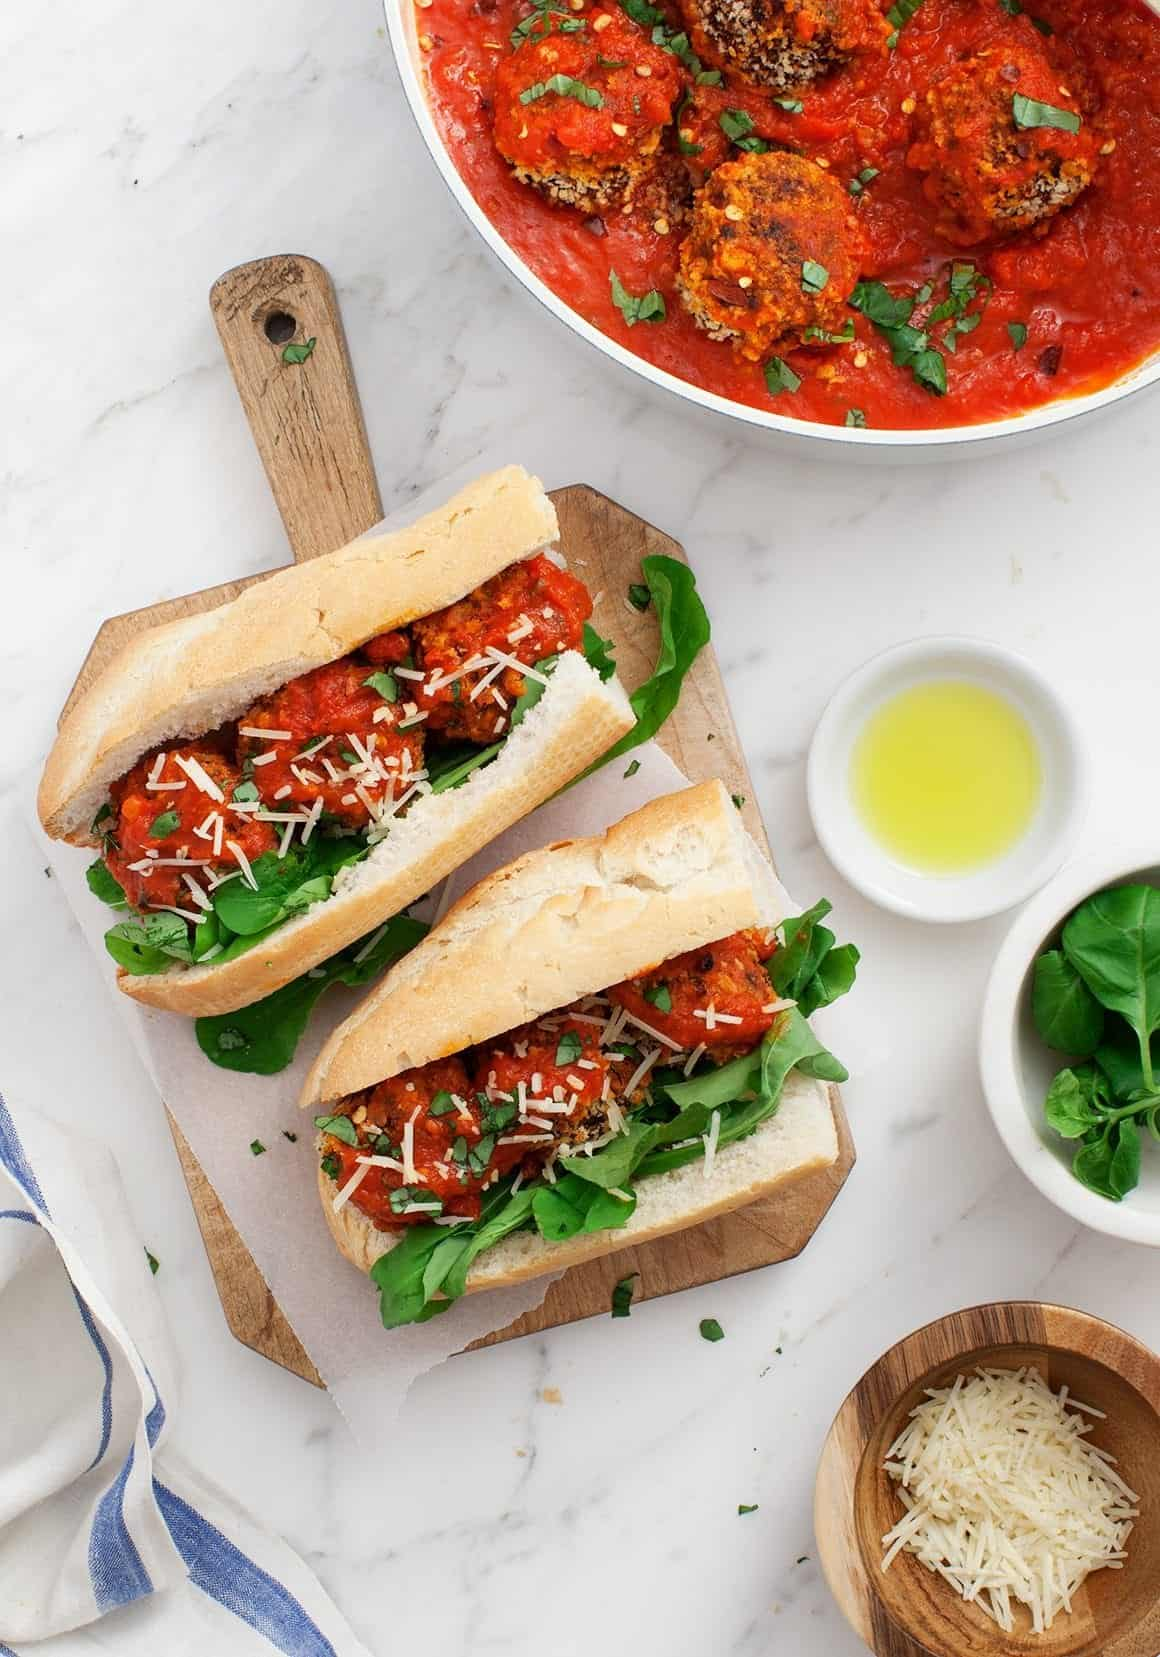 Vegan meatballs in subs